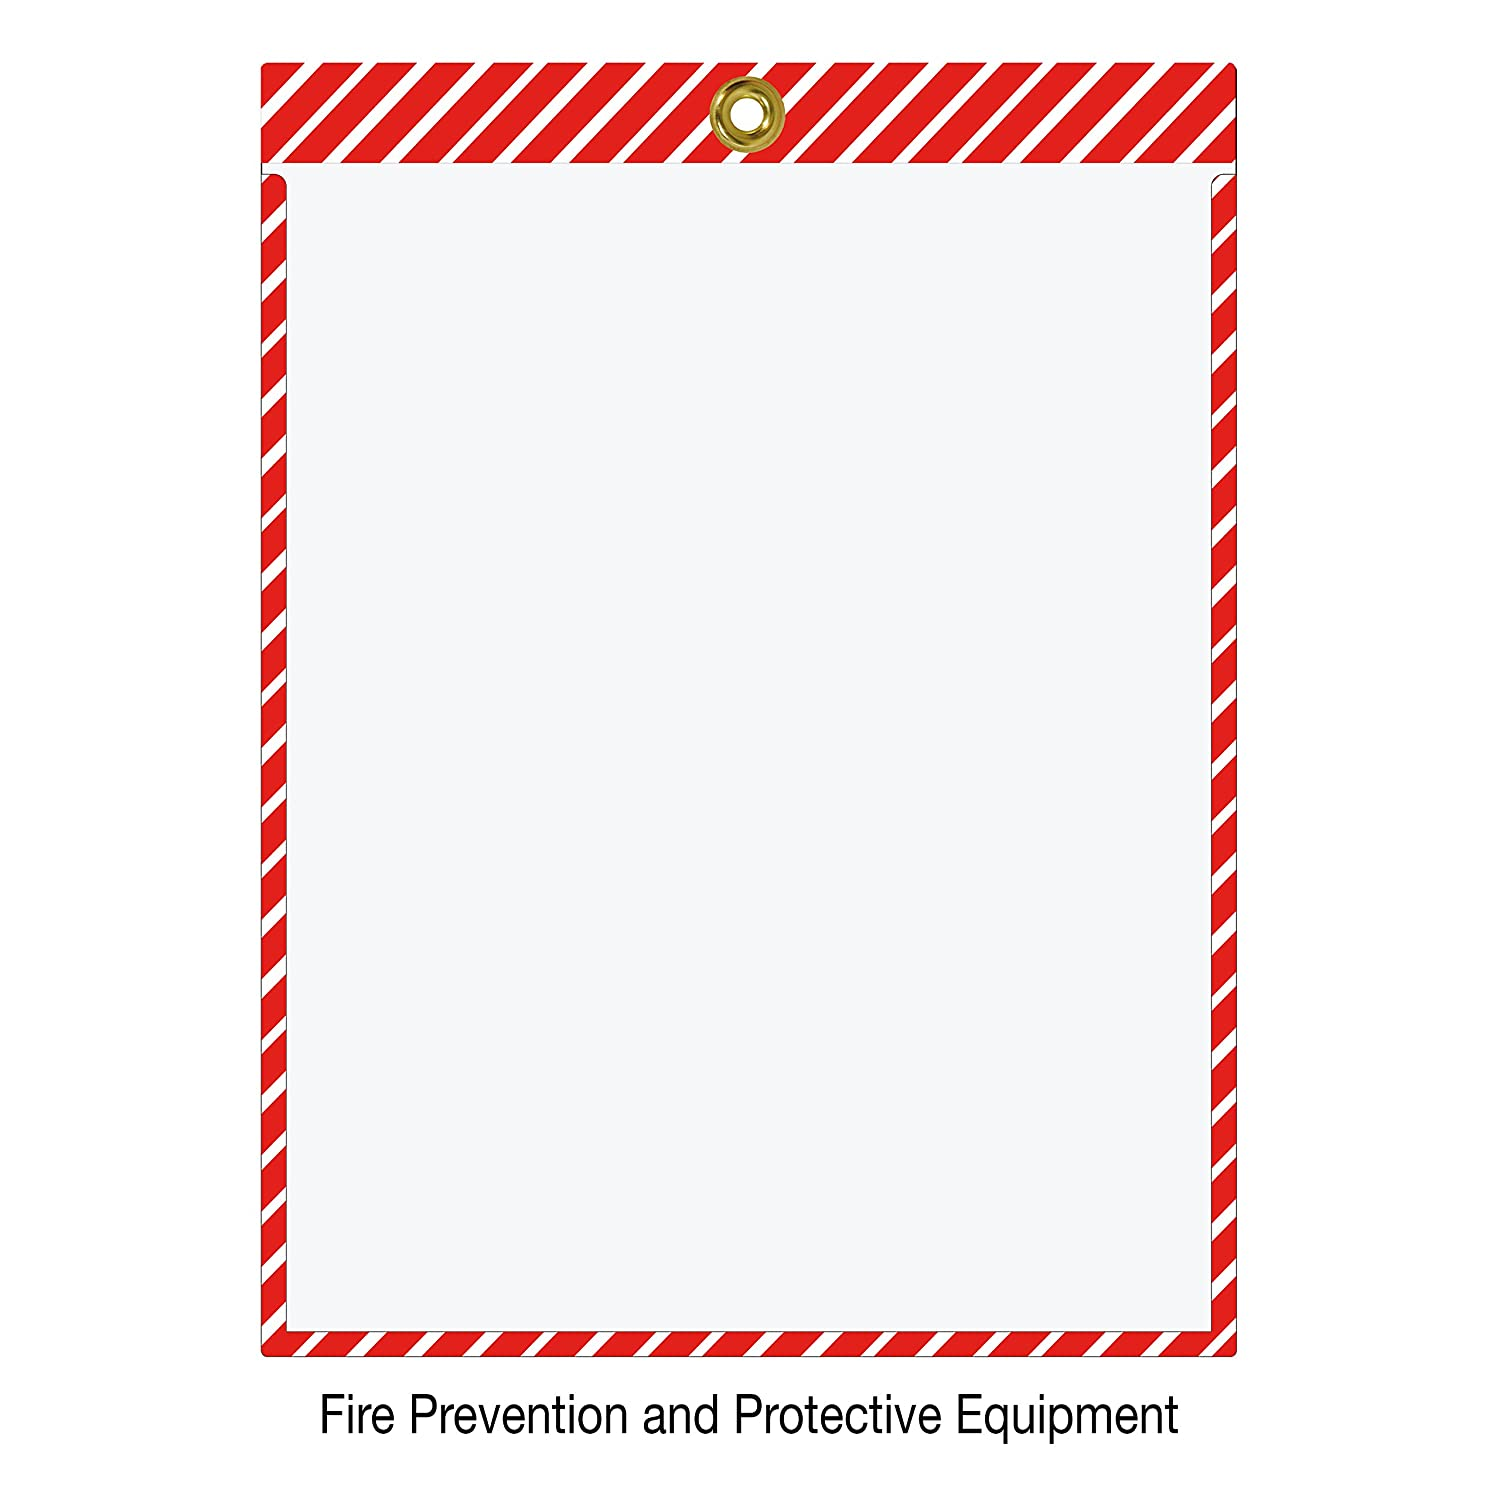 Striped Job Ticket Holders - Pack of 30 Black and White Stripes This color combination is commonly used to designate Housekeeping and Aisle ID. Top-loading with Brass Eyelet